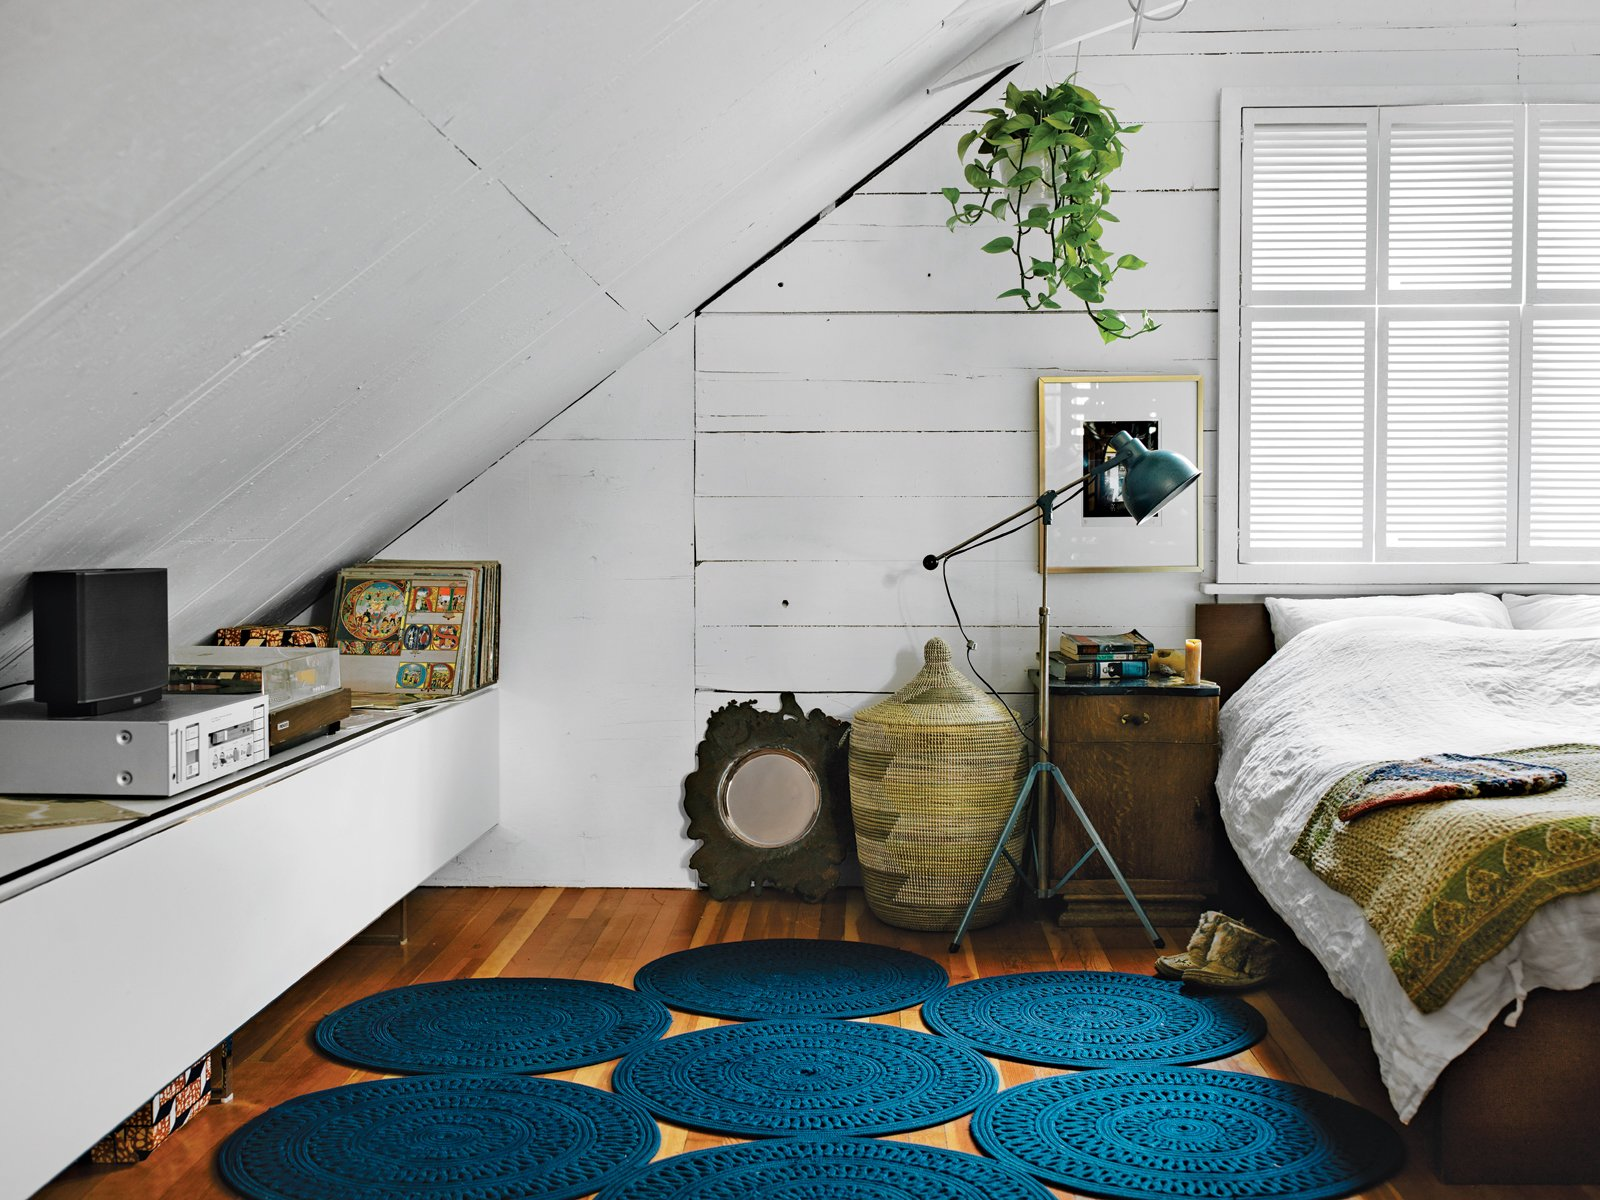 In the bedroom, a light by Bretford in Chicago is next to an Ikea Malm bed topped with Indian linens and folk weavings. The rug is from Paola Lenti. A Bocci 19 brass bowl sits near a hamper from Connected Fair Trade Goods.  How to Frame Space With a Graphic Rug by Aileen Kwun from Modern Interiors in British Columbia